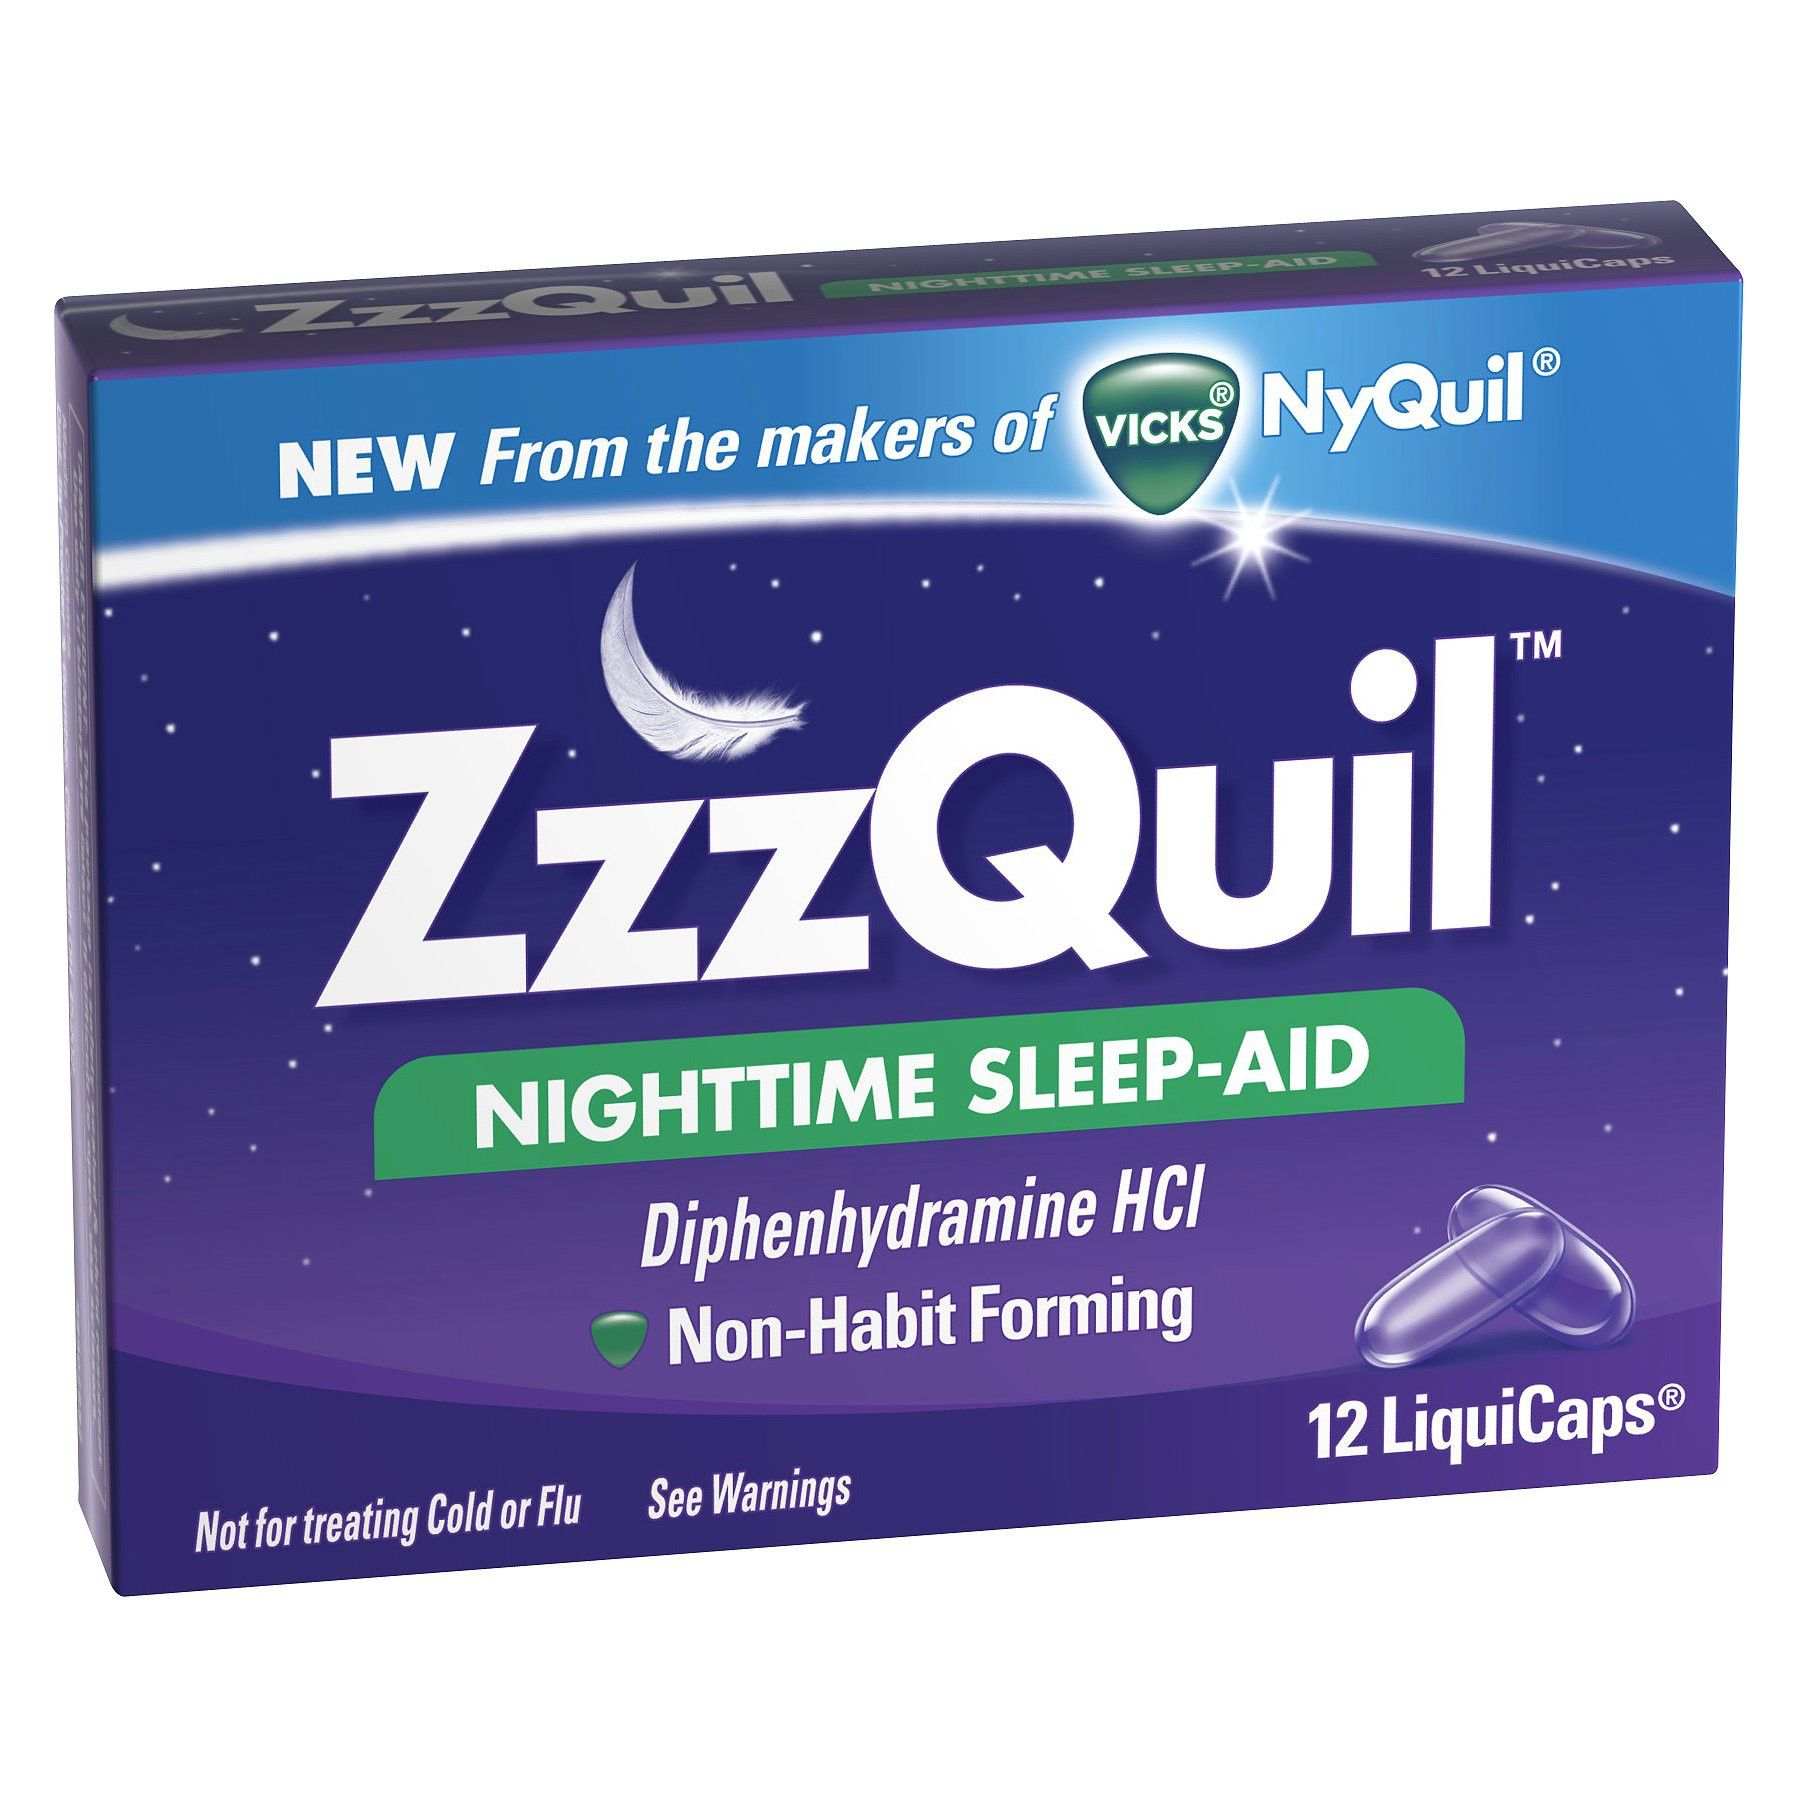 Can You Get Addicted To Nyquil Pin On Things I Like Aka Let S Go Shopping